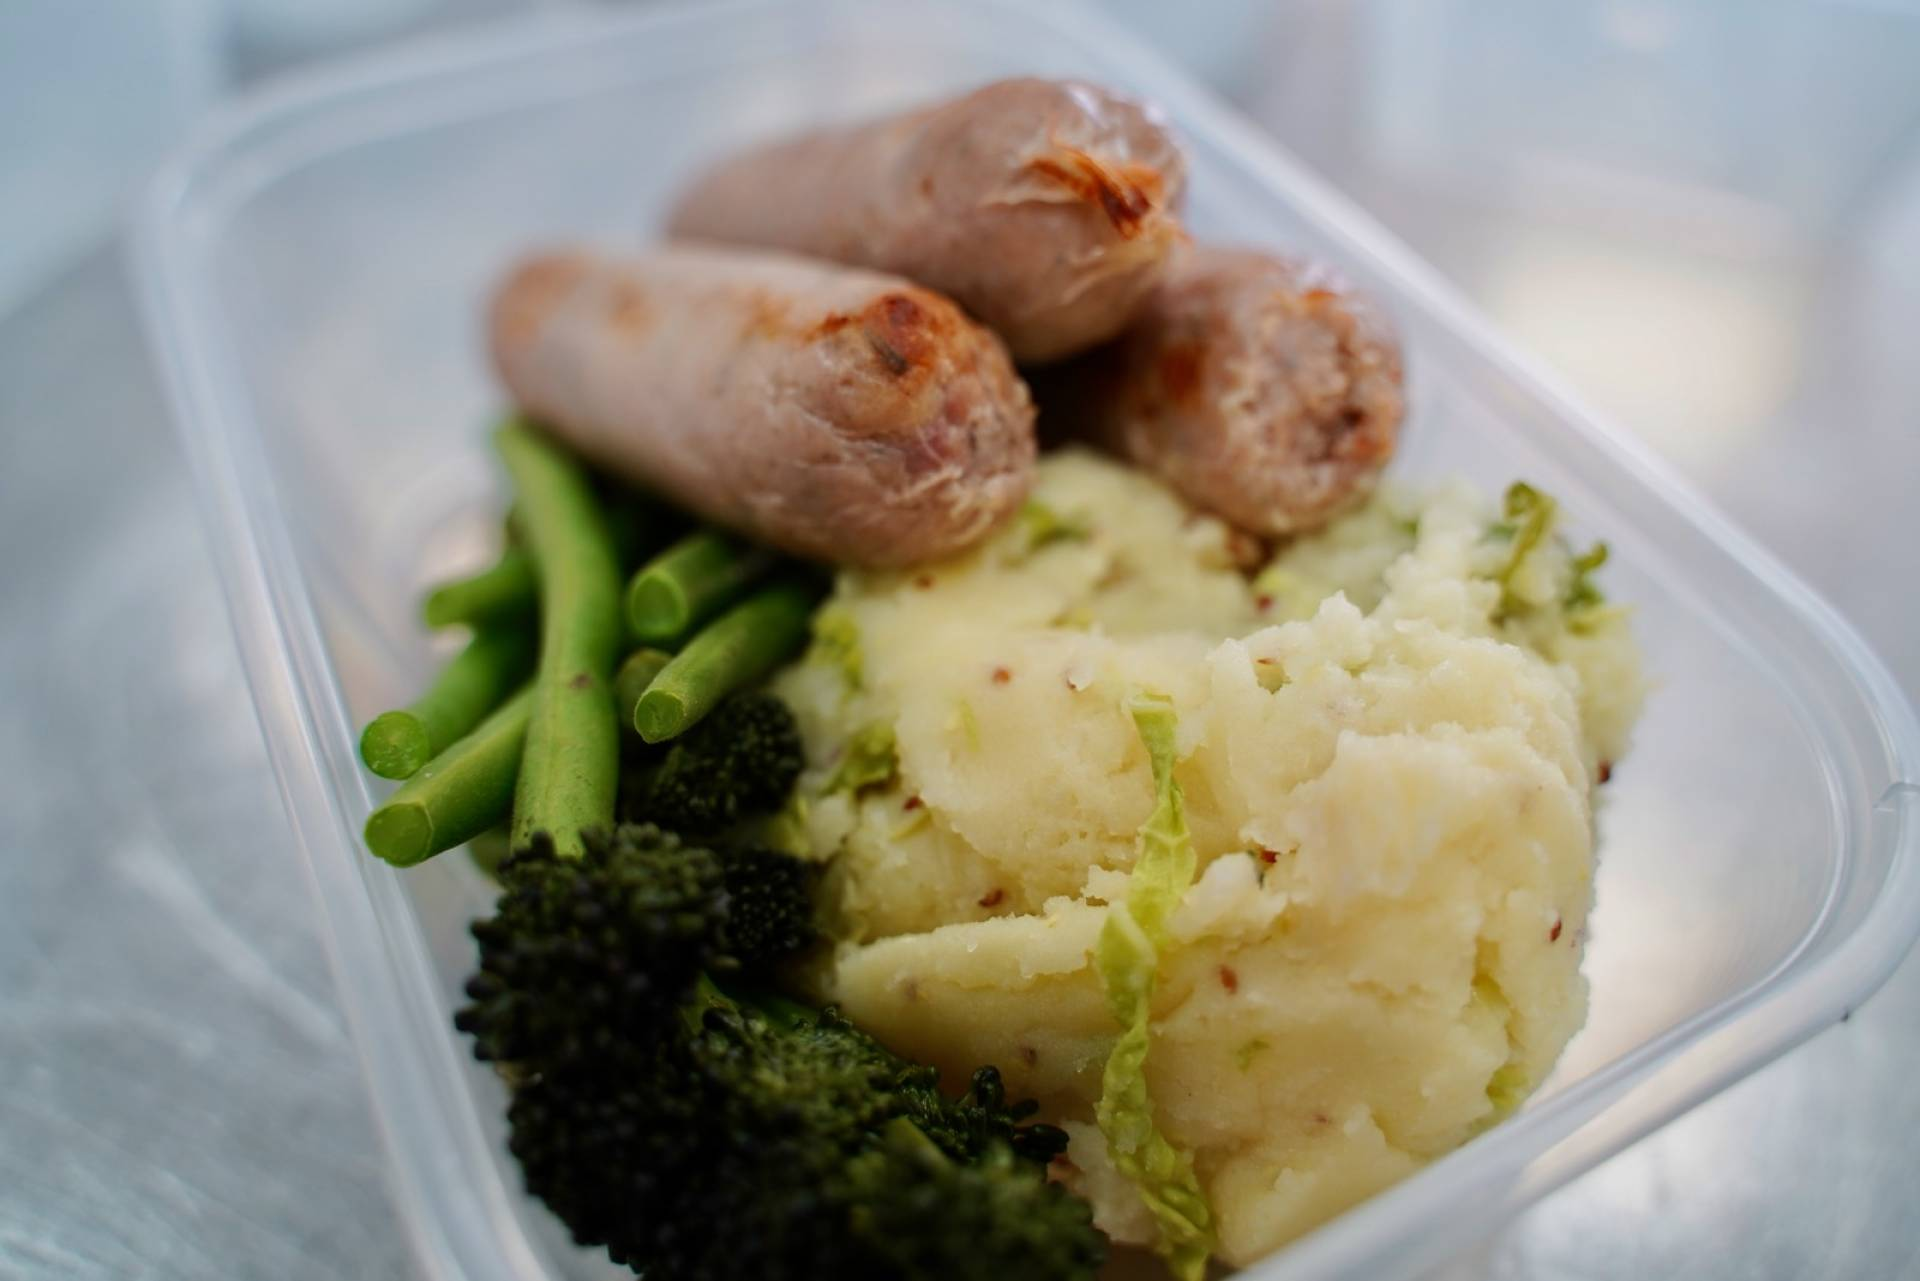 Caramelised Onion Turkey Sausages with Mash & Greens